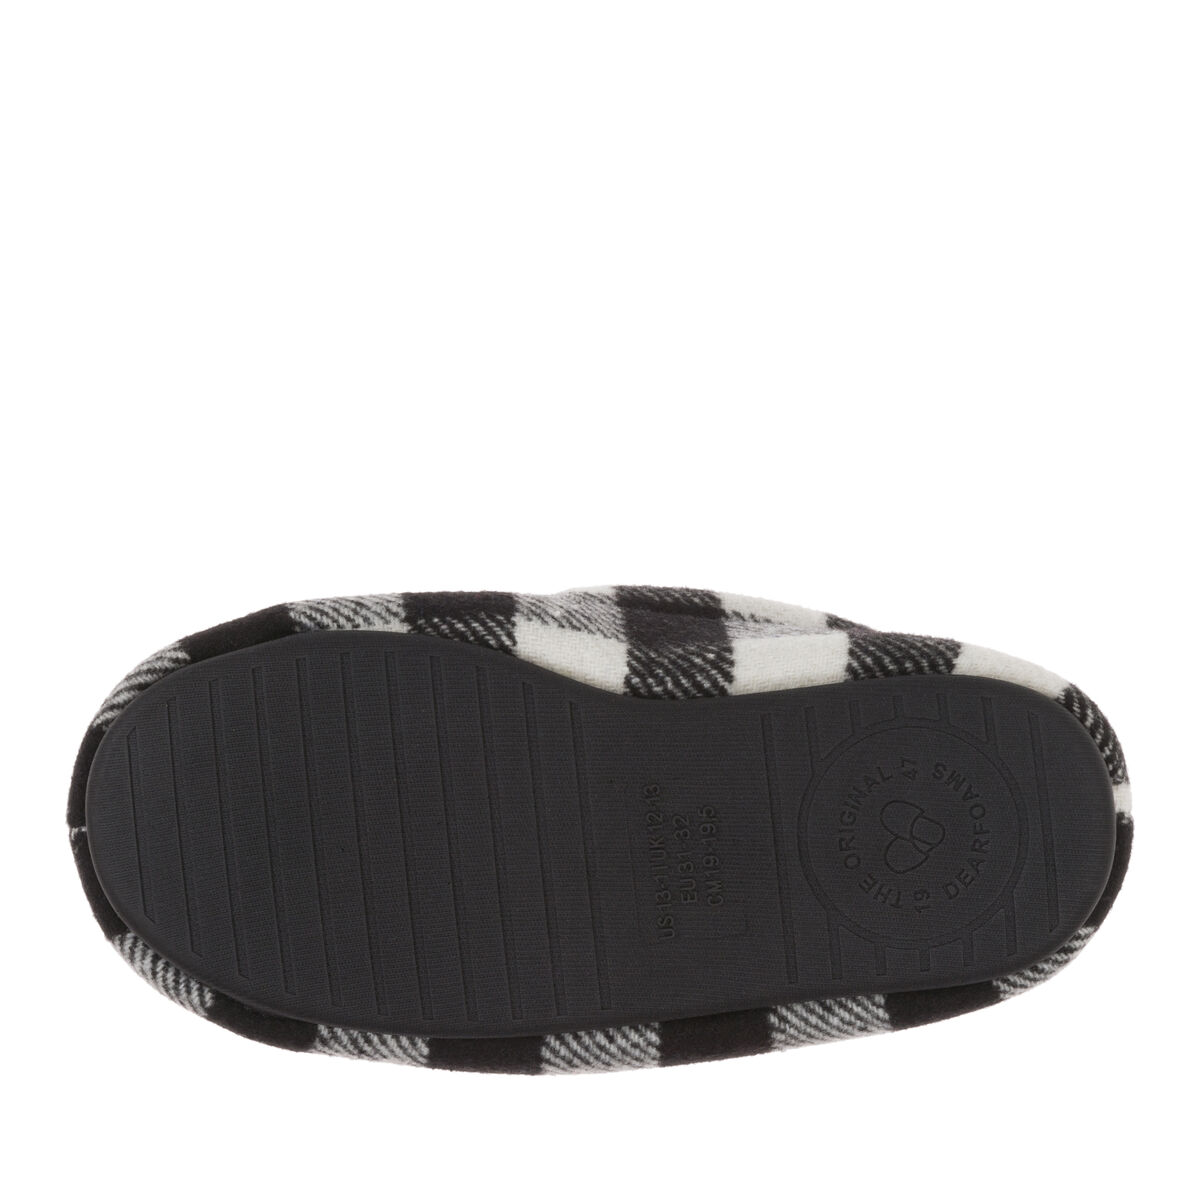 Kids Plaid Moccasin with Pile Lining